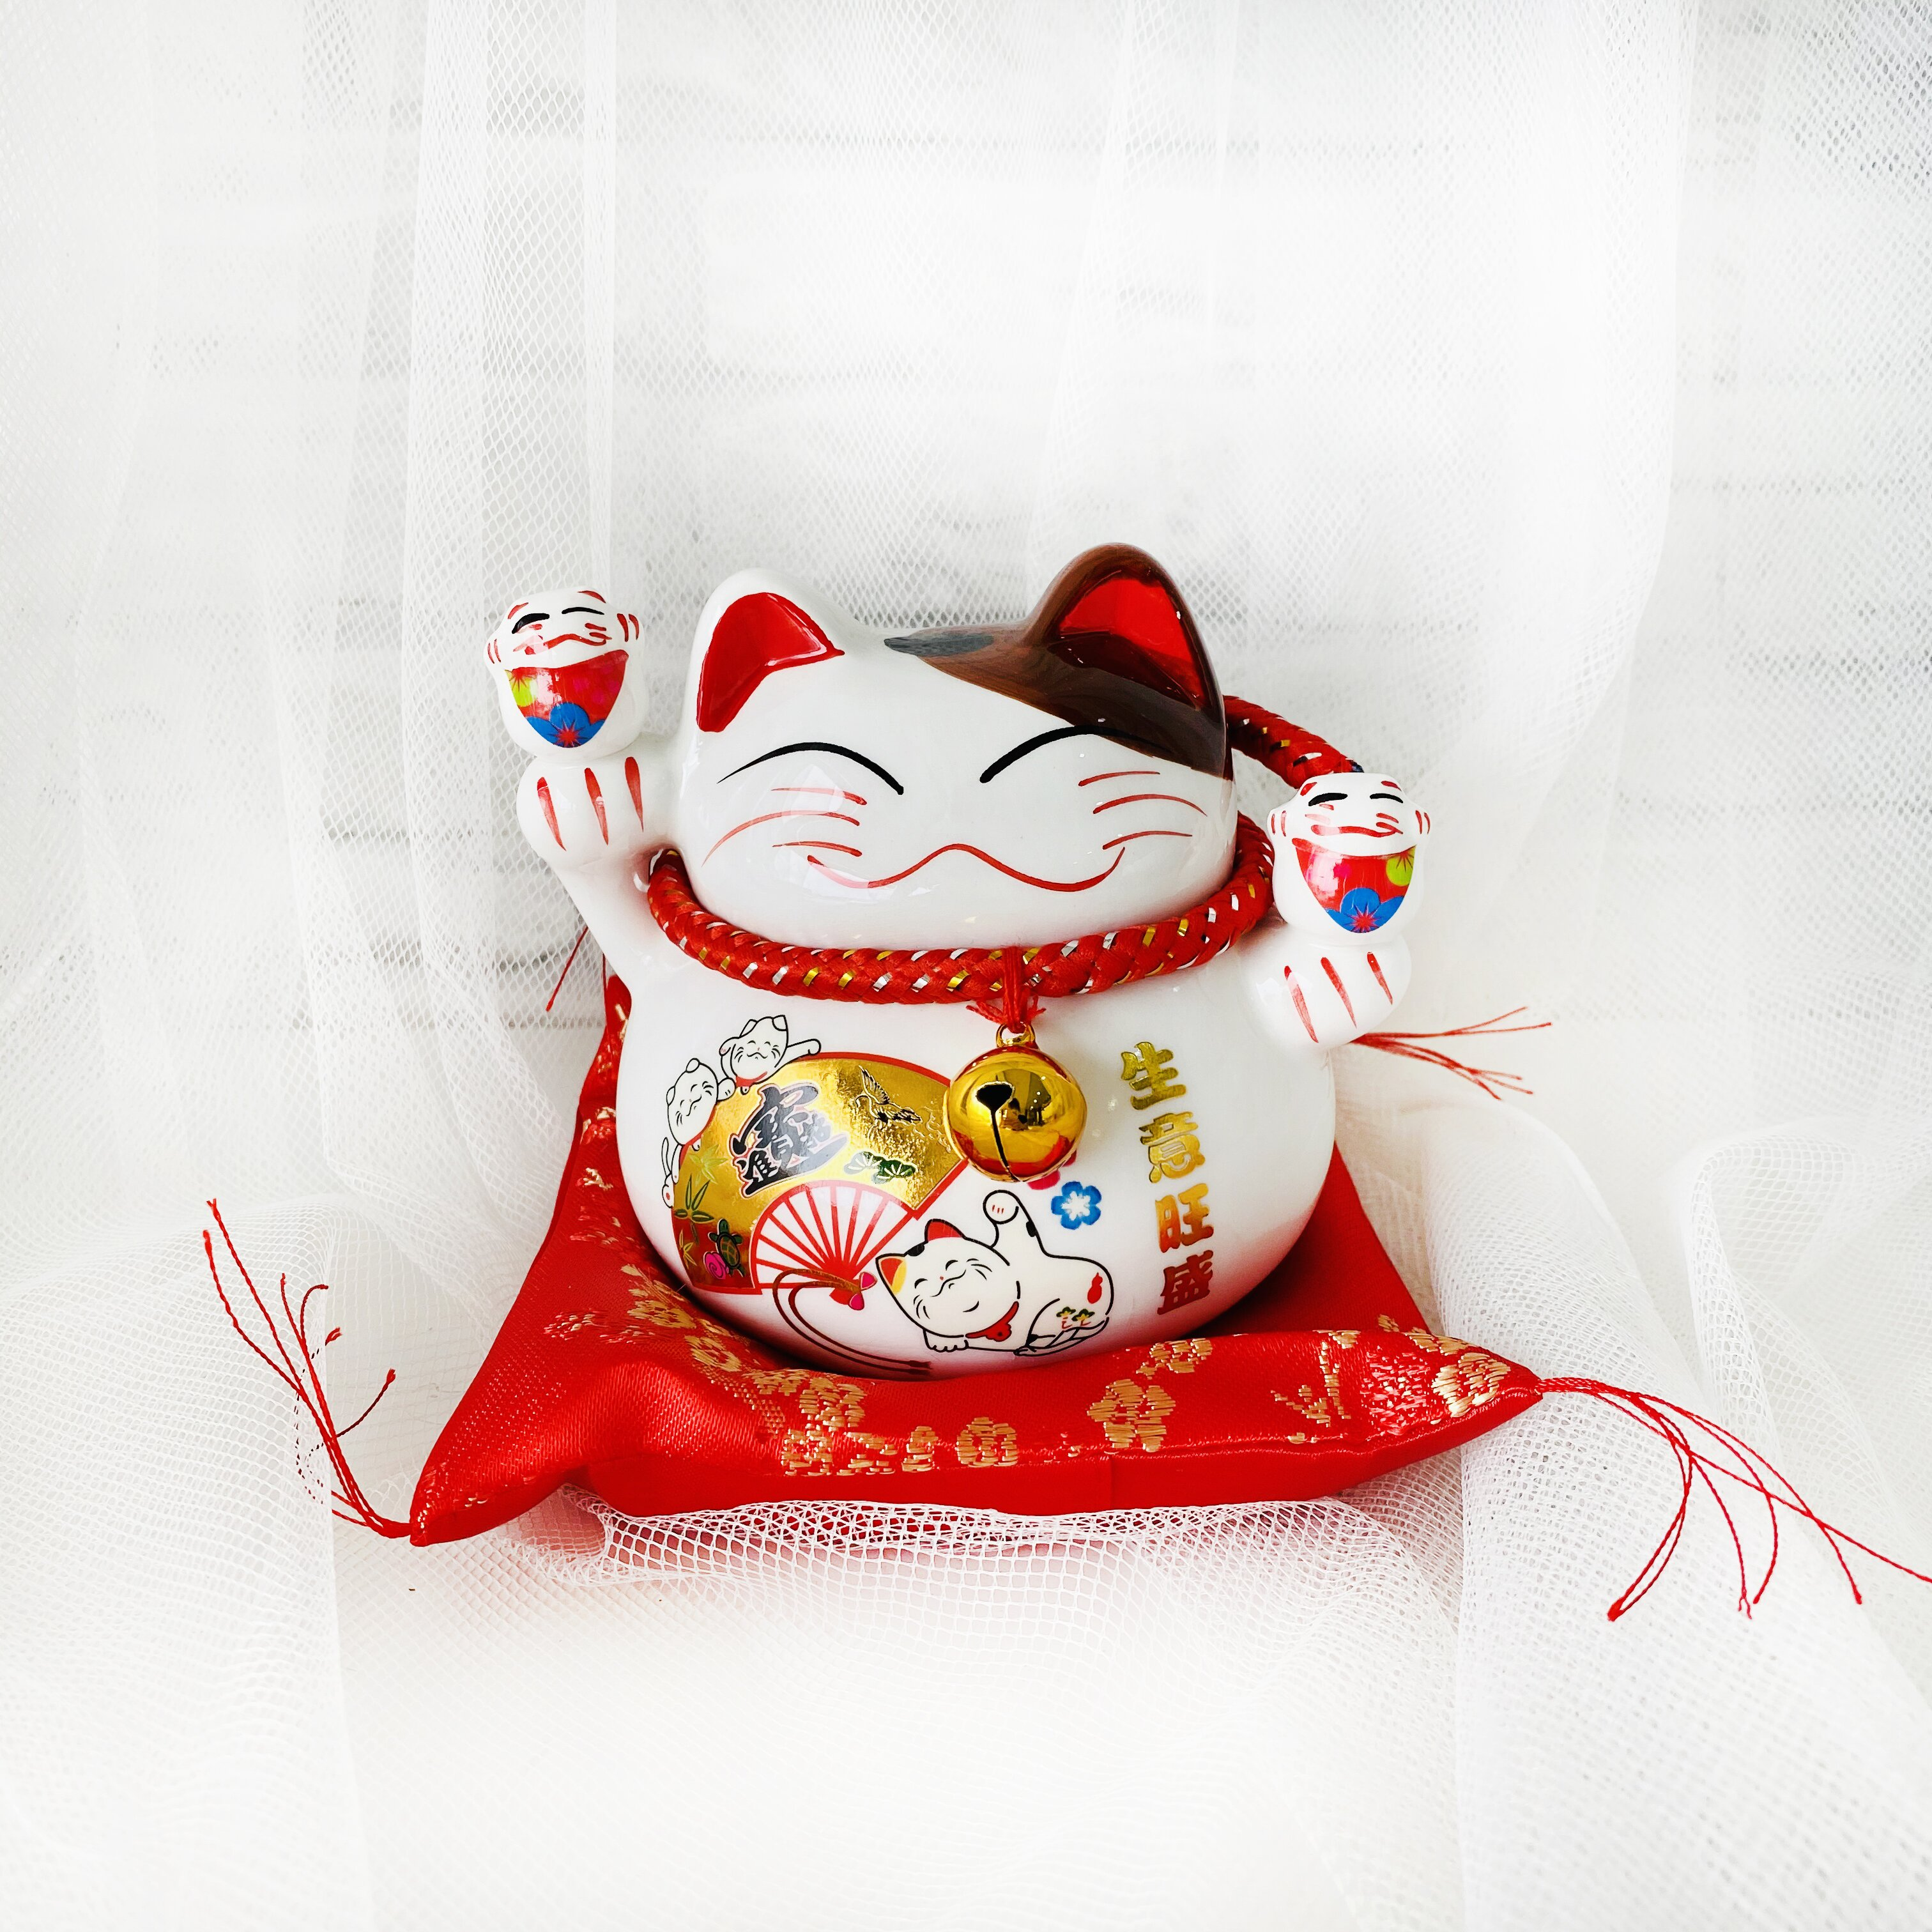 Lucky Pussy Cat (L) - Freeland Floral 自由花苑